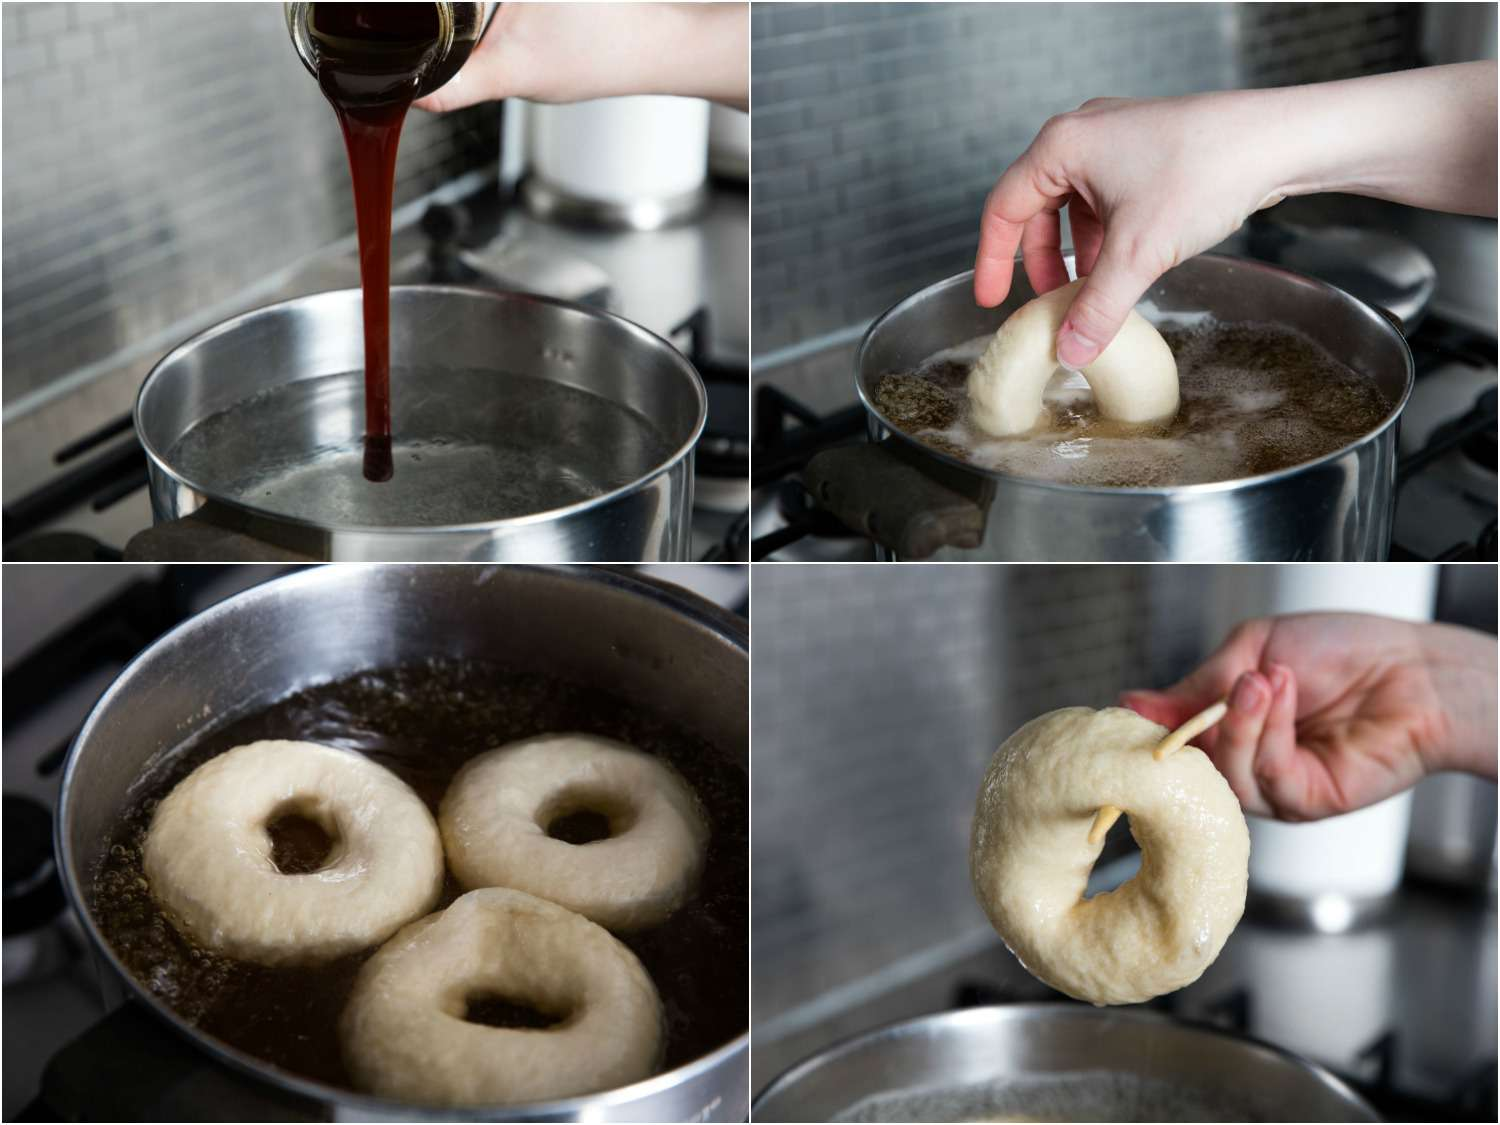 Photo collage showing adding barley malt syrup to pot of oiling water, adding a bagel, boiling three bagels, and removing one bagel from water using chopsticks.